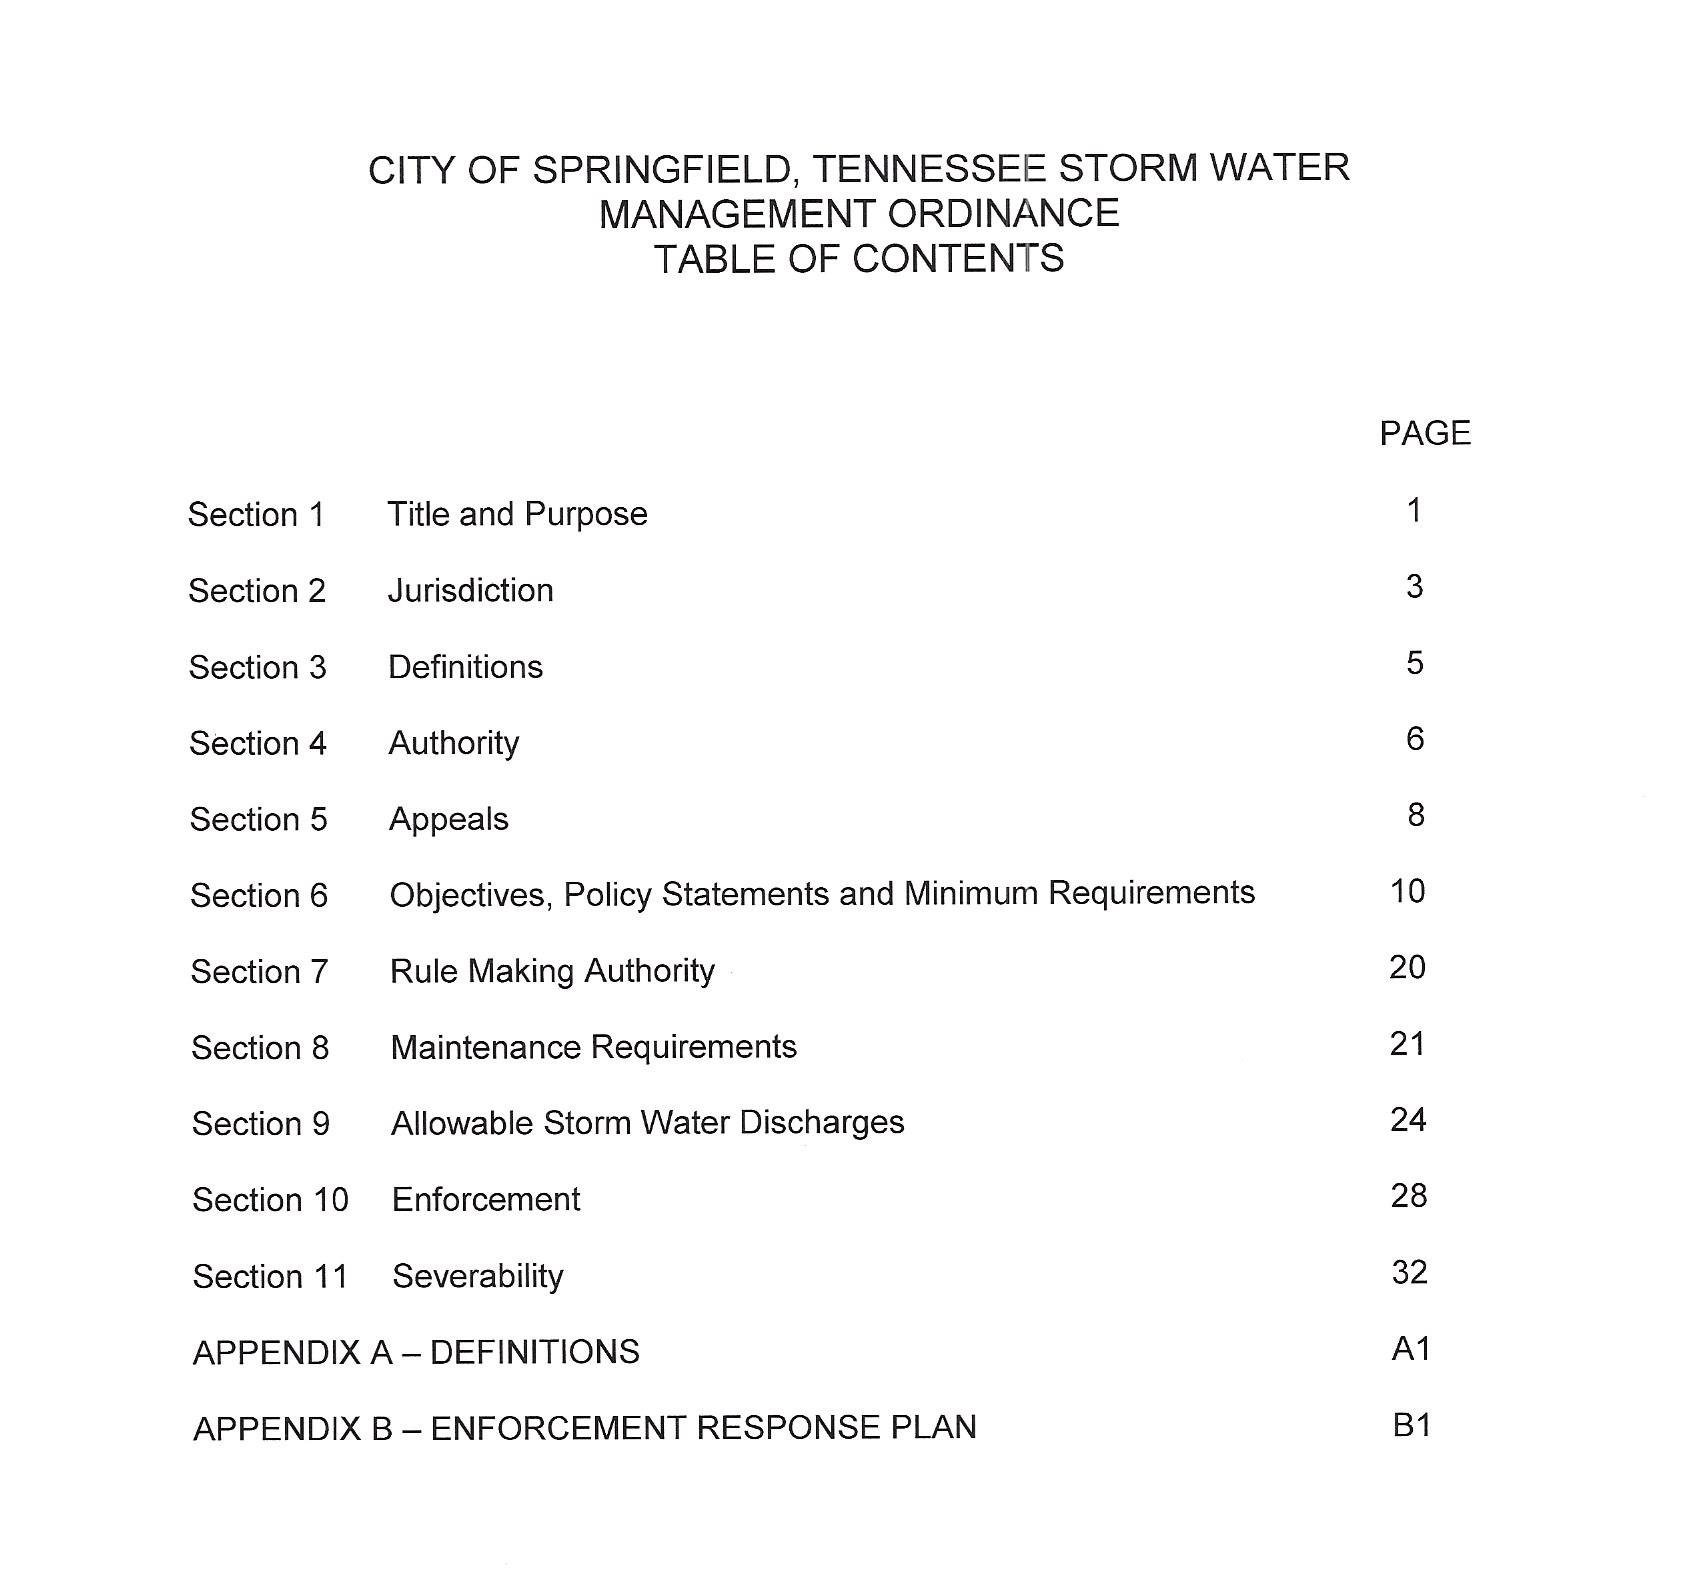 SW Table of Contents